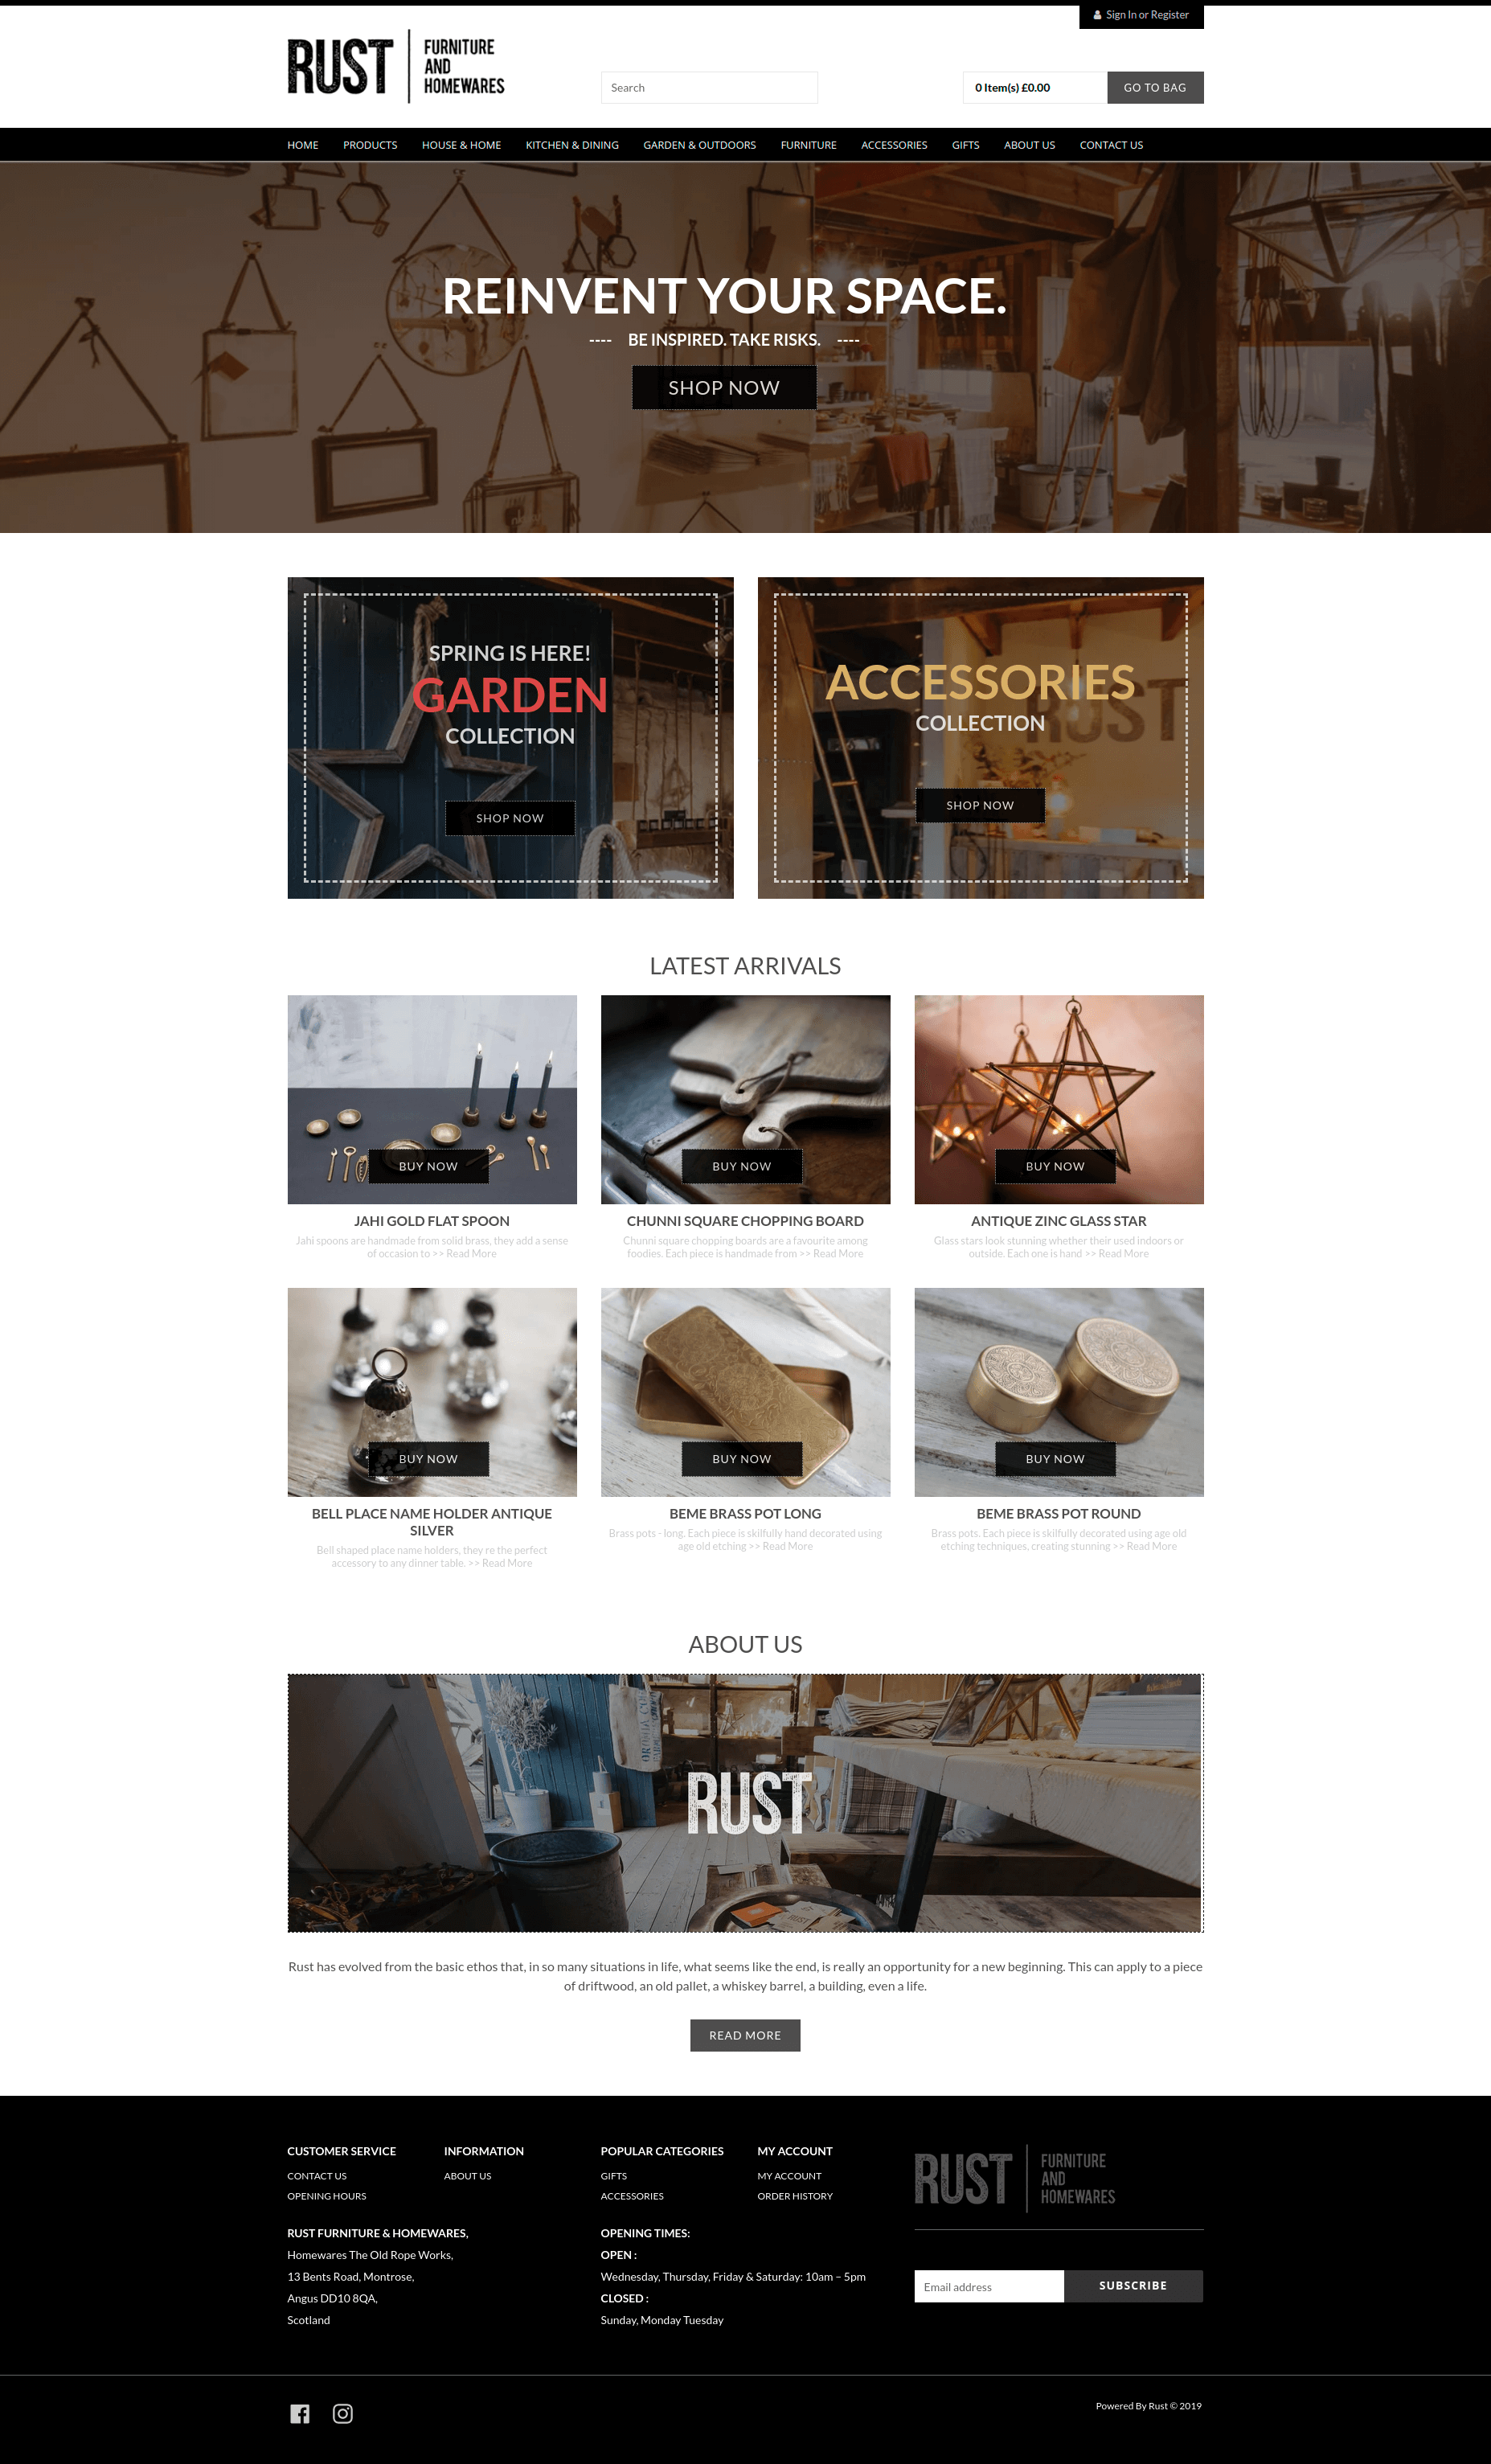 rust-full-page